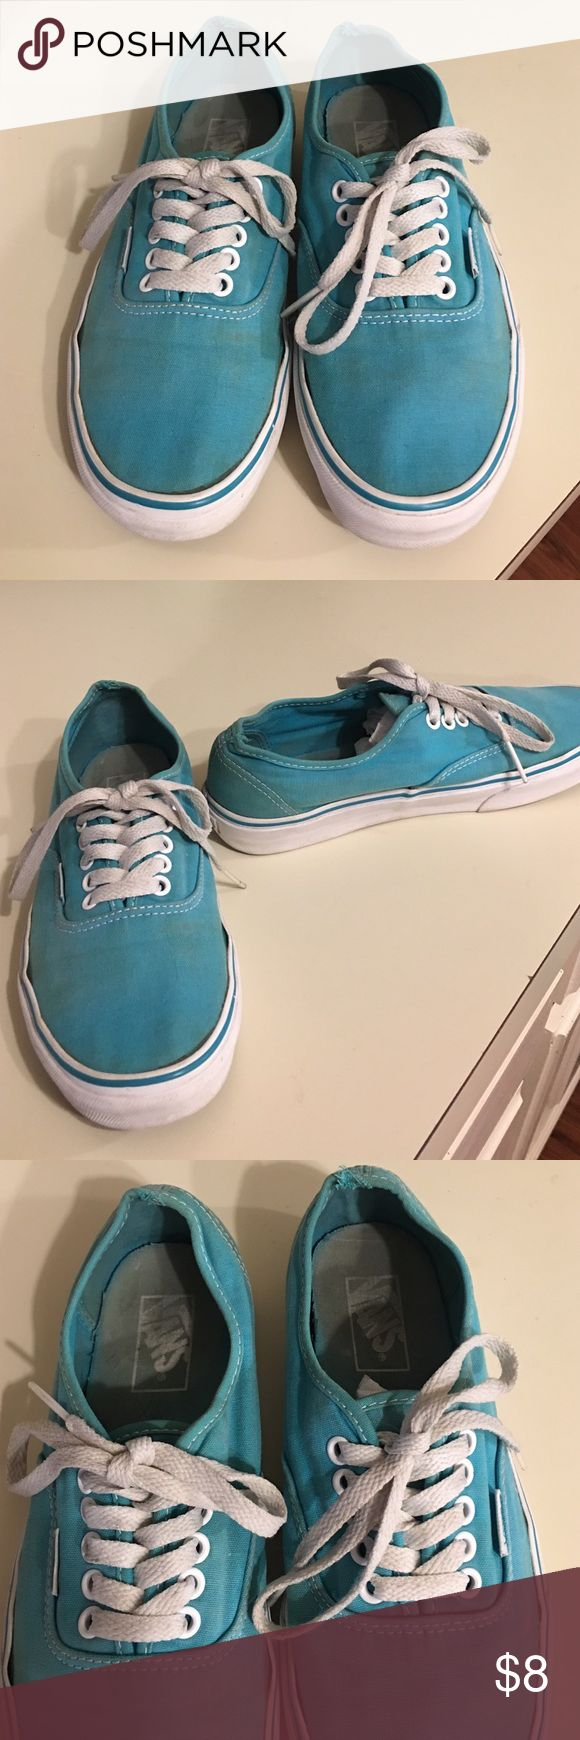 Teal Vans Sneakers 8 Teal Vans. Women's size 8 Men's size 6 1/2. Pre-owned so they do show wear. Color is pictures looks more blue but they are more greenish blue. Vans Shoes Sneakers